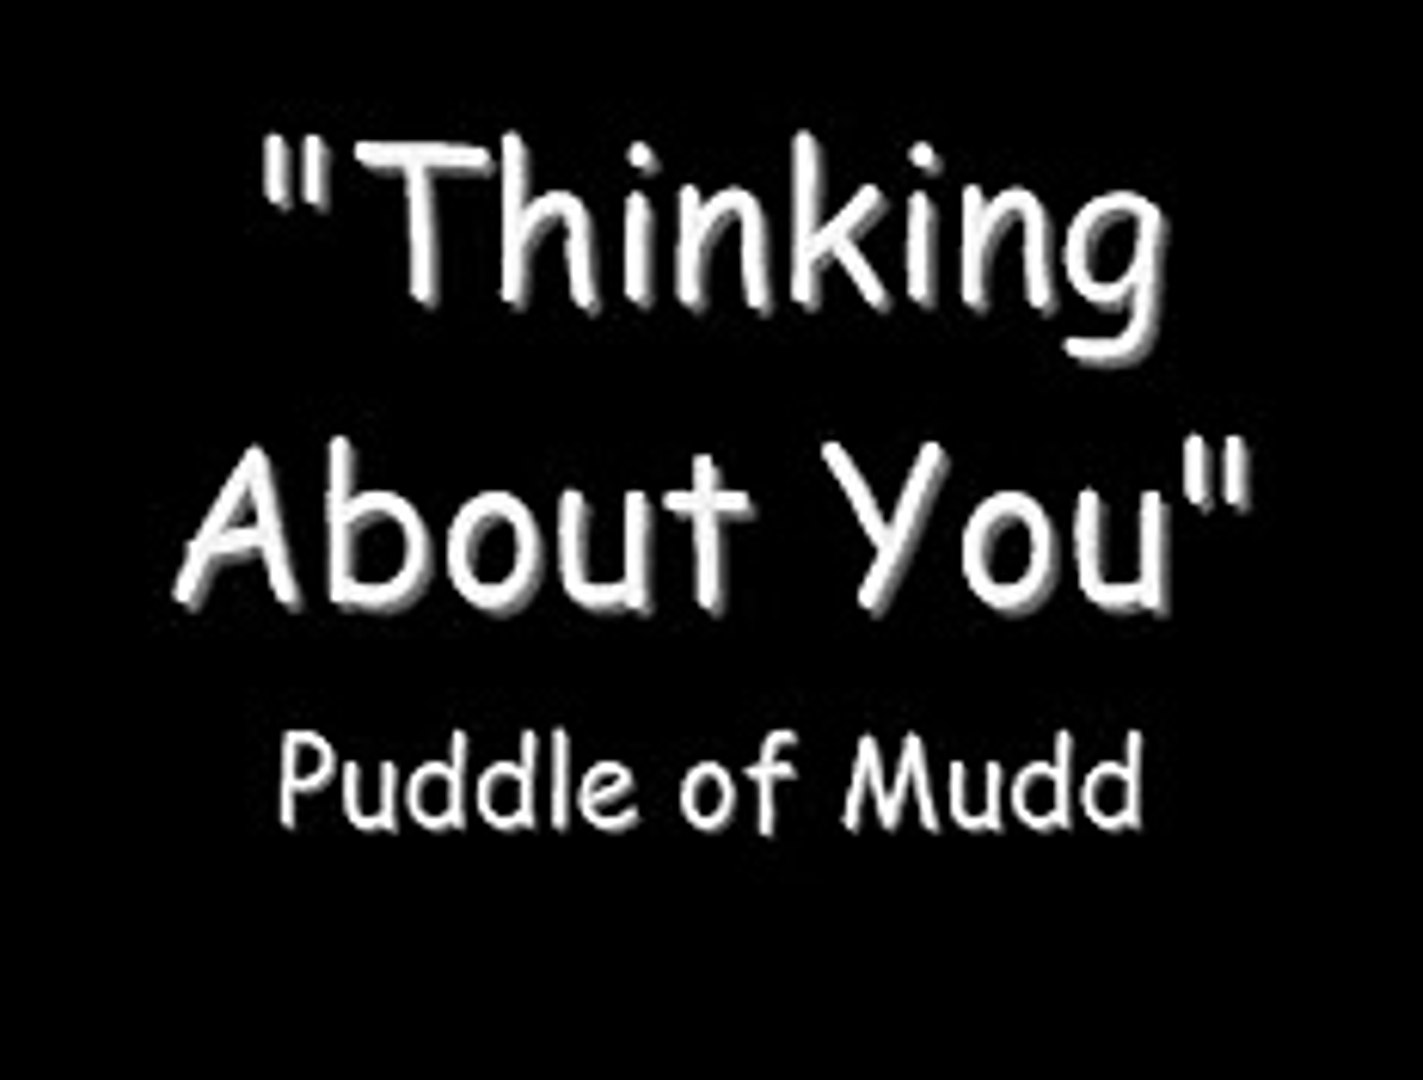 National Day Of Reconciliation ⁓ The Fastest Puddle Of Mudd